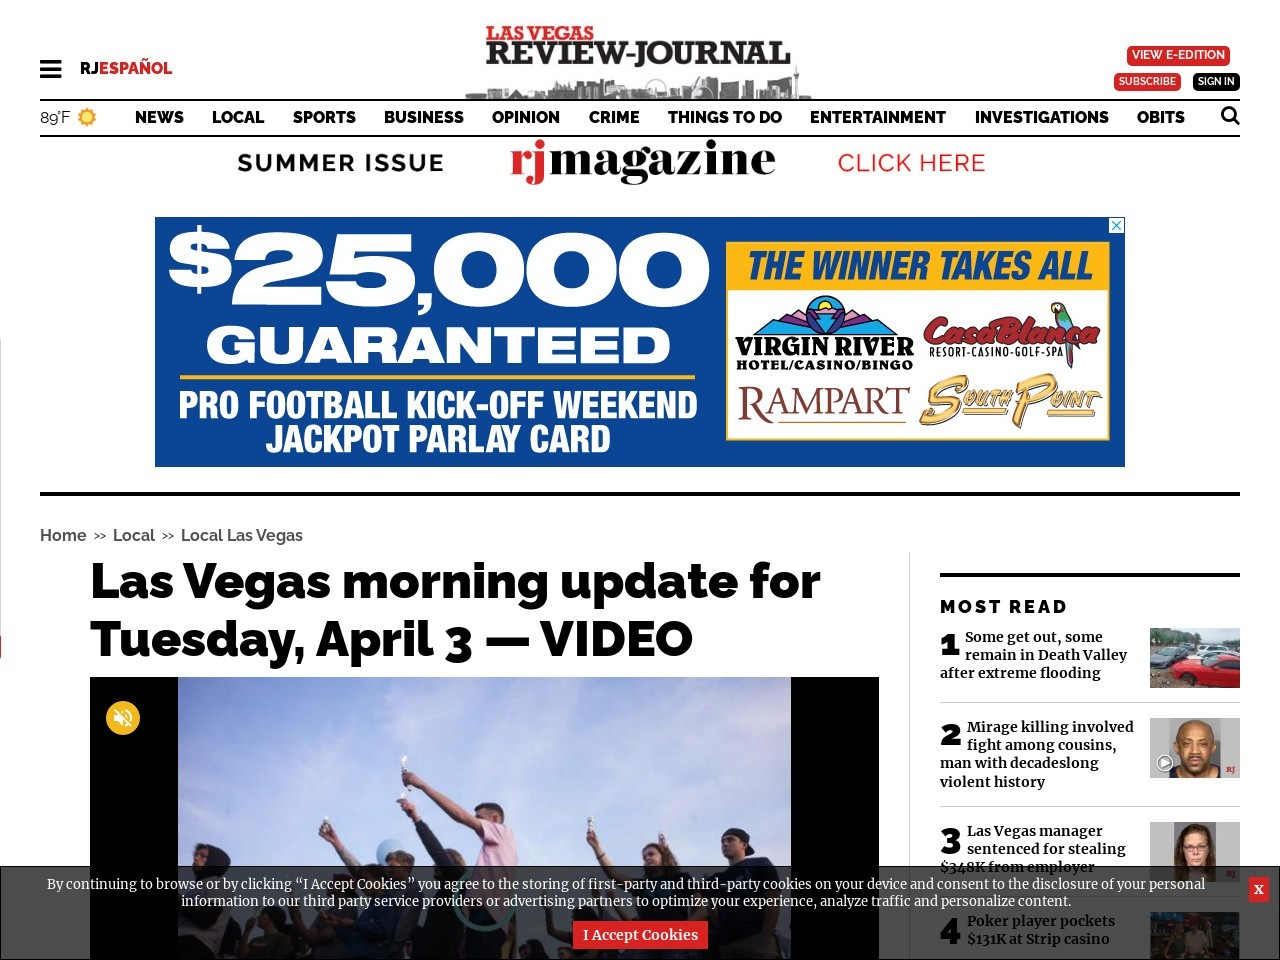 Las Vegas morning update for Tuesday, April 3 — VIDEO